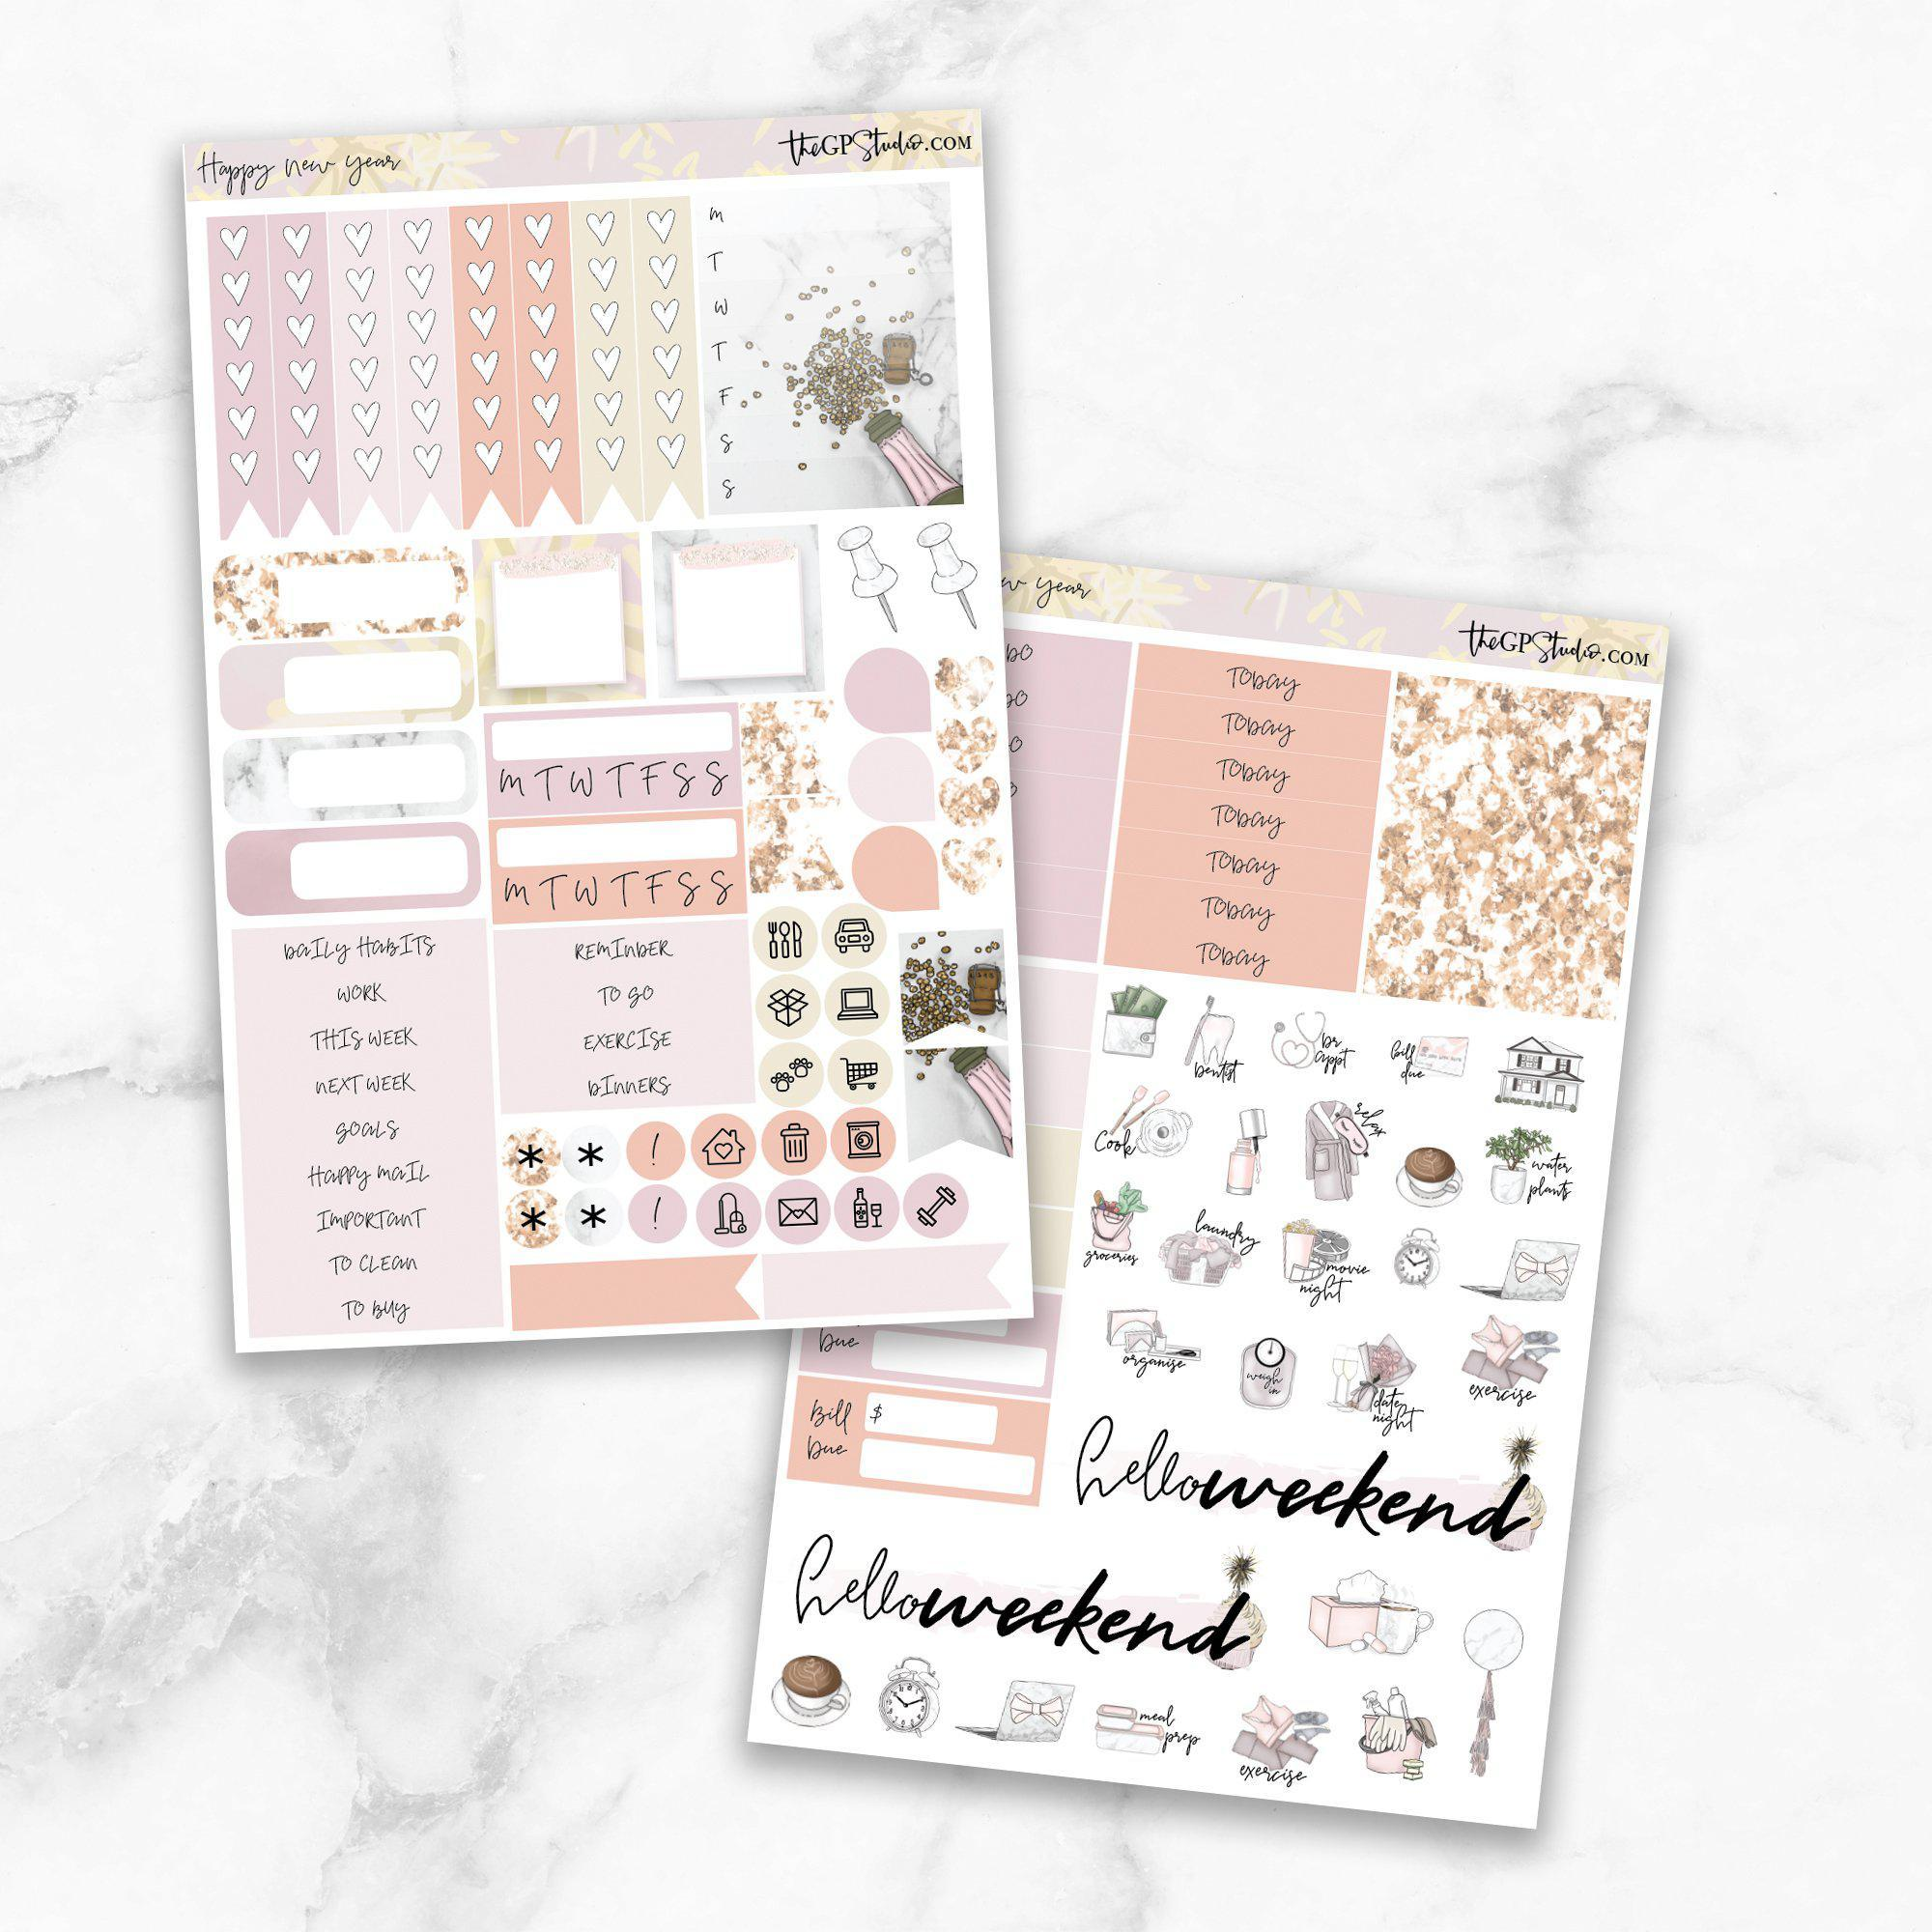 HAPPY NEW YEAR Functional Planner Sticker Kit-The GP Studio